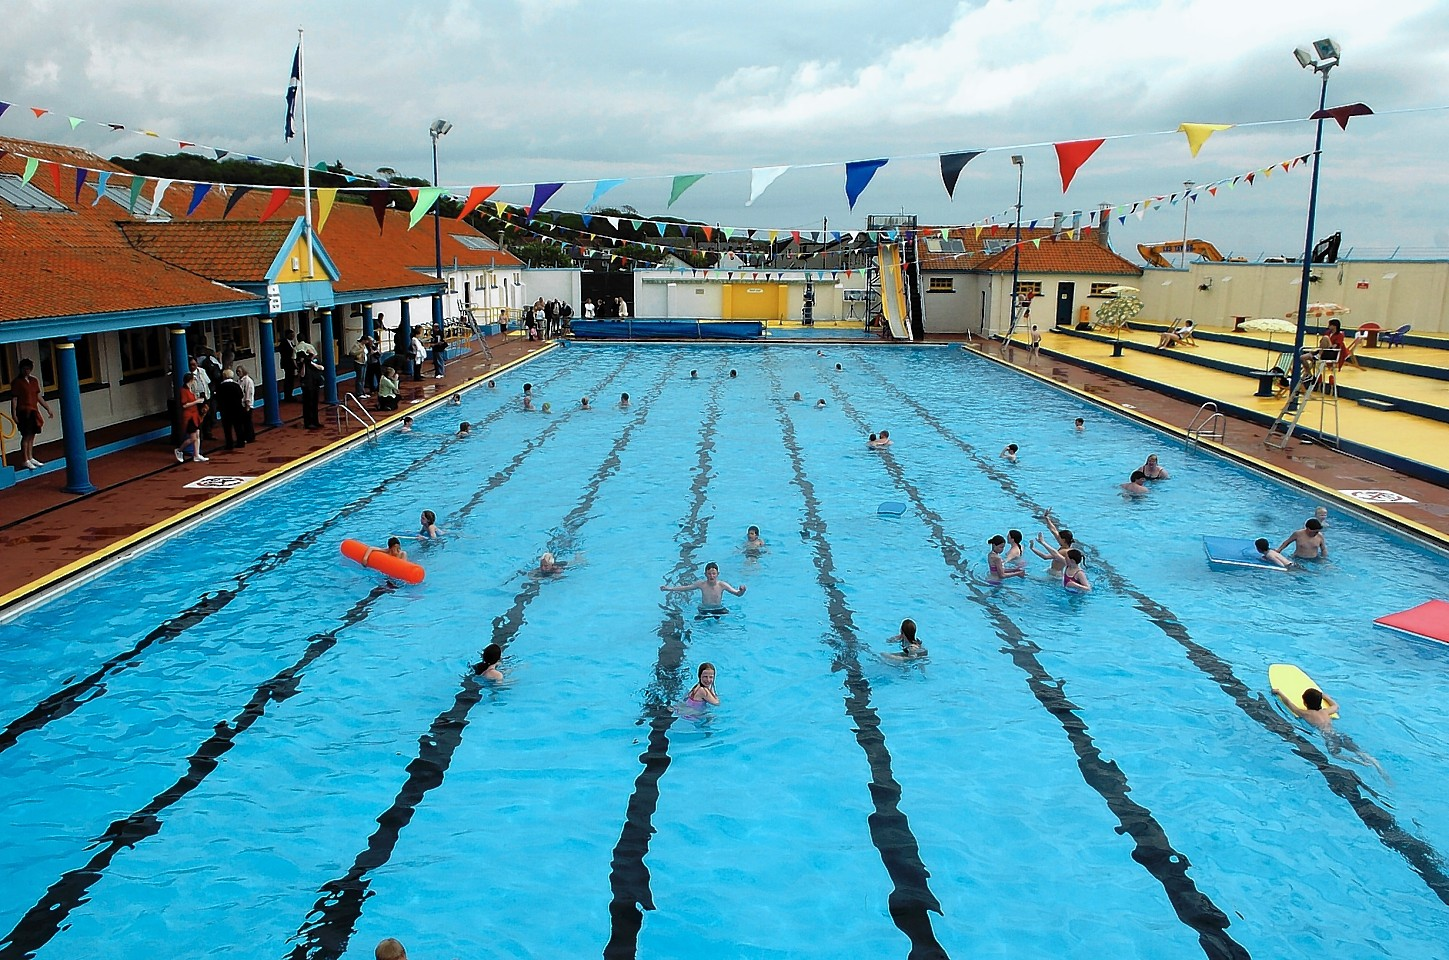 Stonehaven Open-Air Swimming Pool Aberdeen and the Northeast, Stonehaven Open Air Pool Archives | Press and Journal